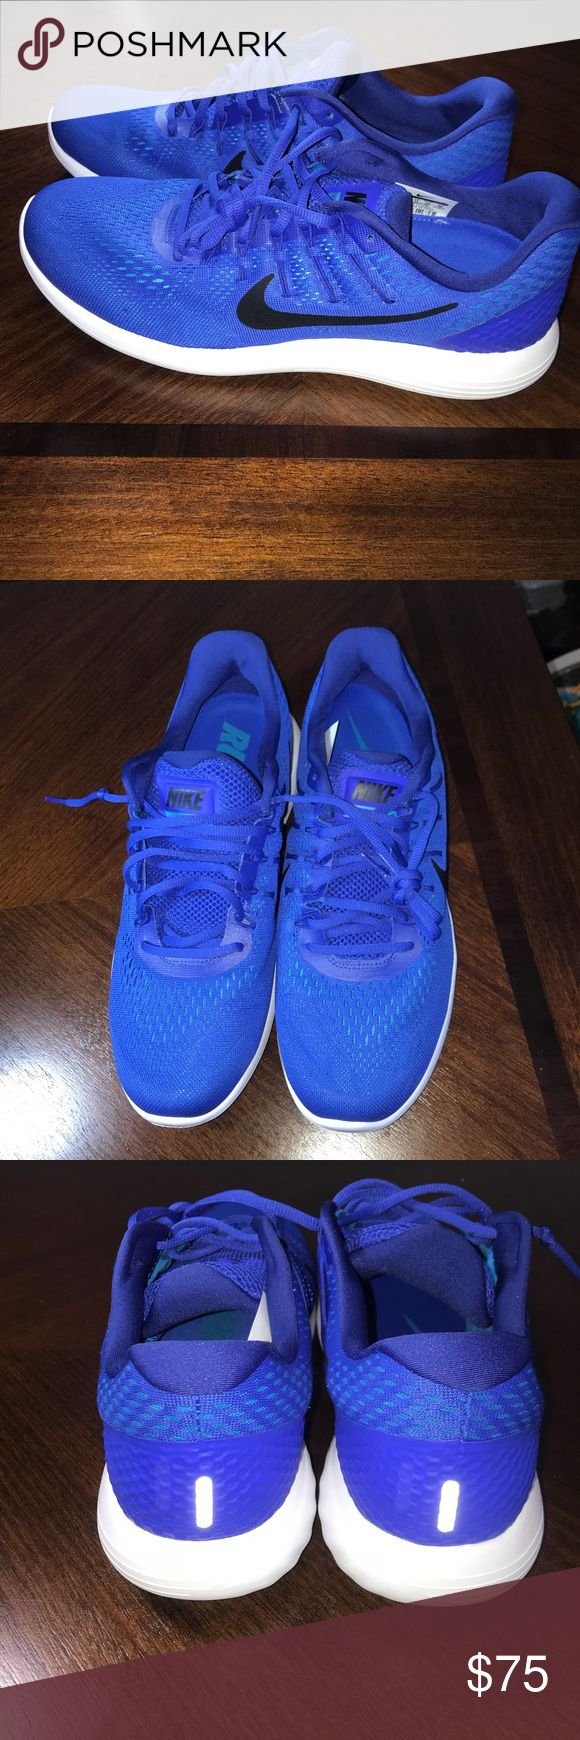 Nike lunarglide 8 Mens running shoes blue size 12 Nike lunarglide 8 Mens running shoes blue size 12 wit dynamic support. Mesh with rubber protect over mesh on heals. Brand new never worn. Do not have box. Nike Shoes Athletic Shoes